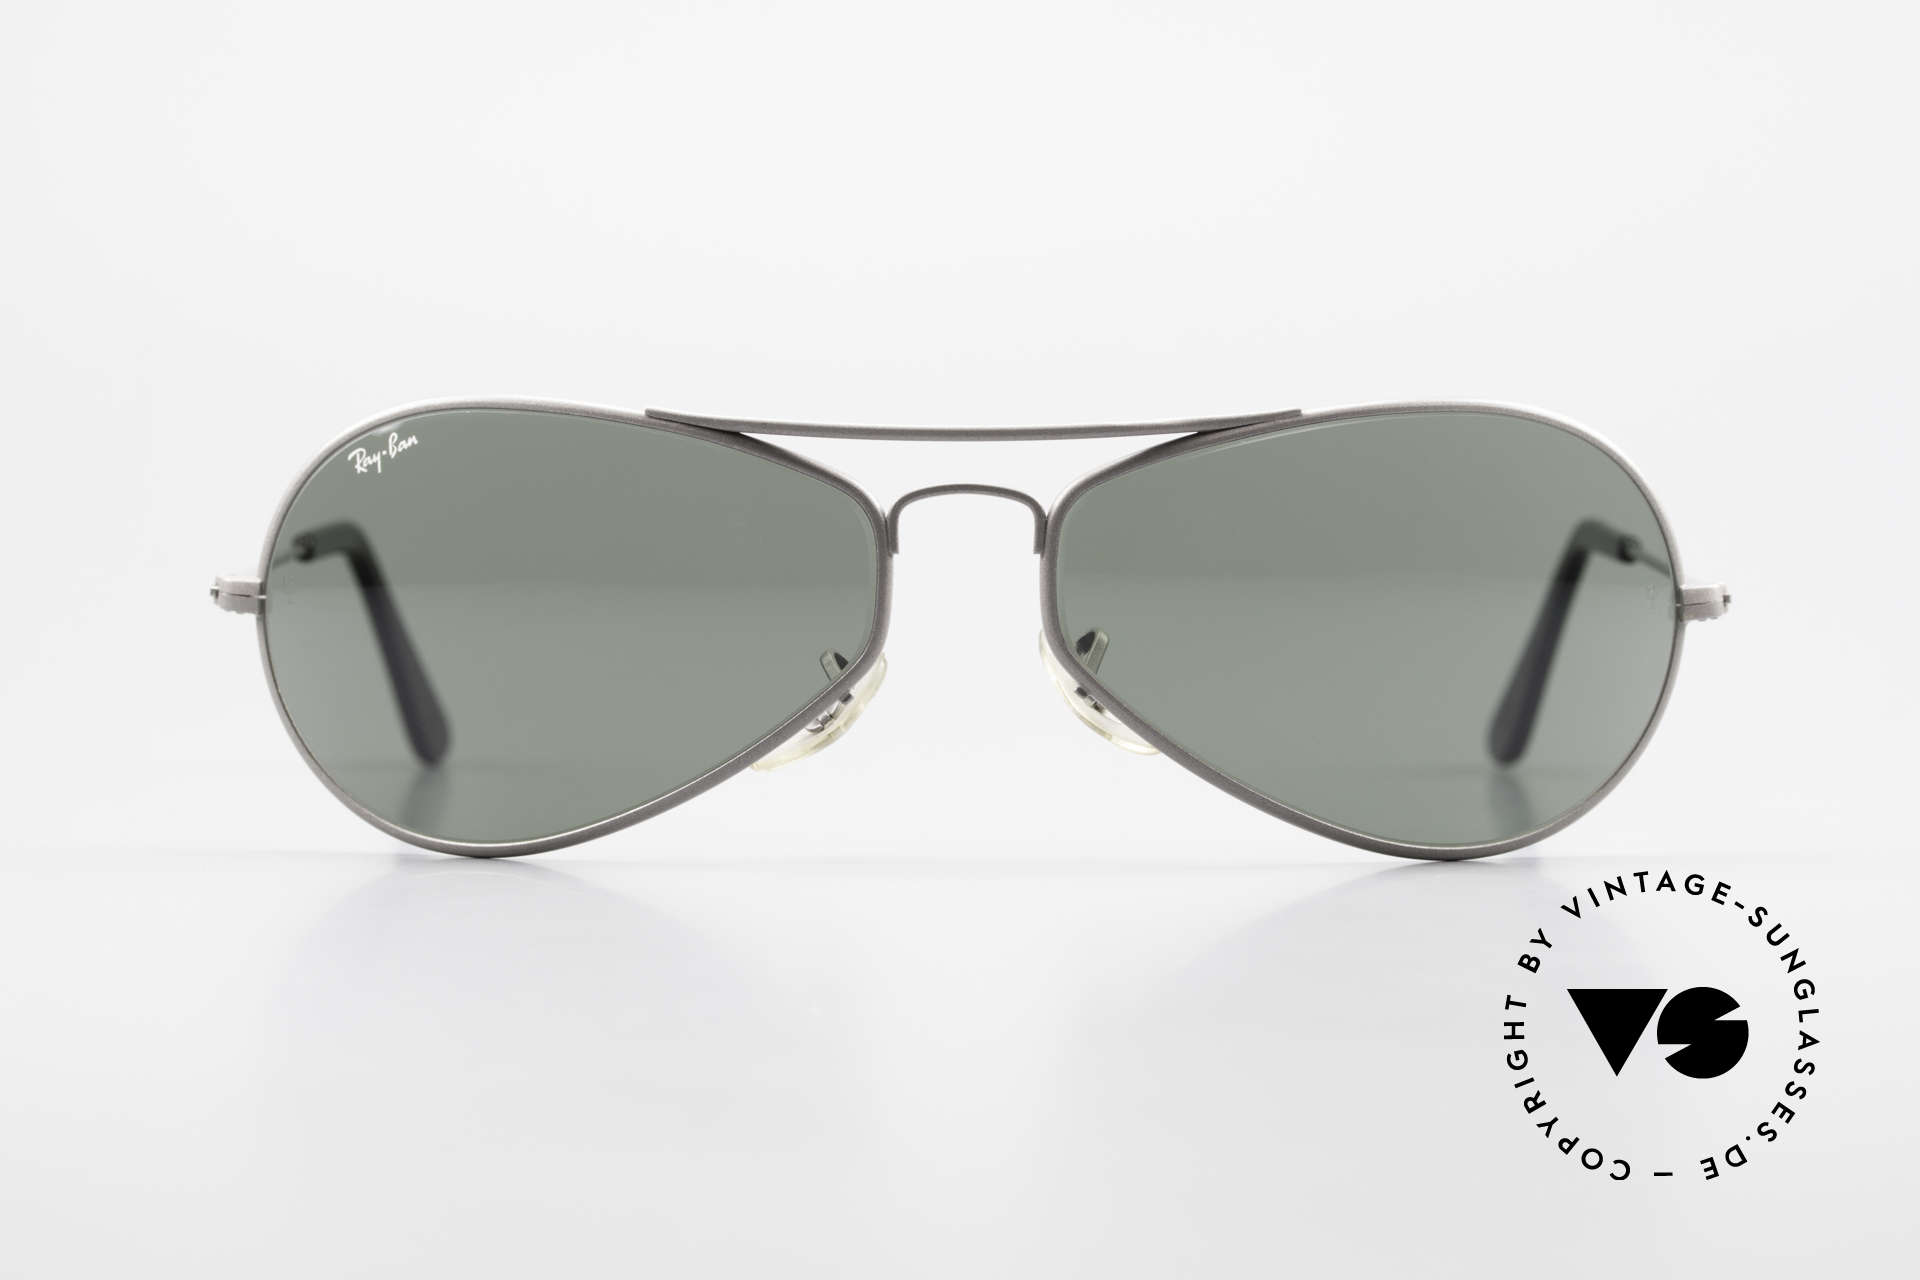 Ray Ban Air Boss Sporty 90's USA Ray-Ban Model, an old original from the 1990's (made in U.S.A.), Made for Men and Women